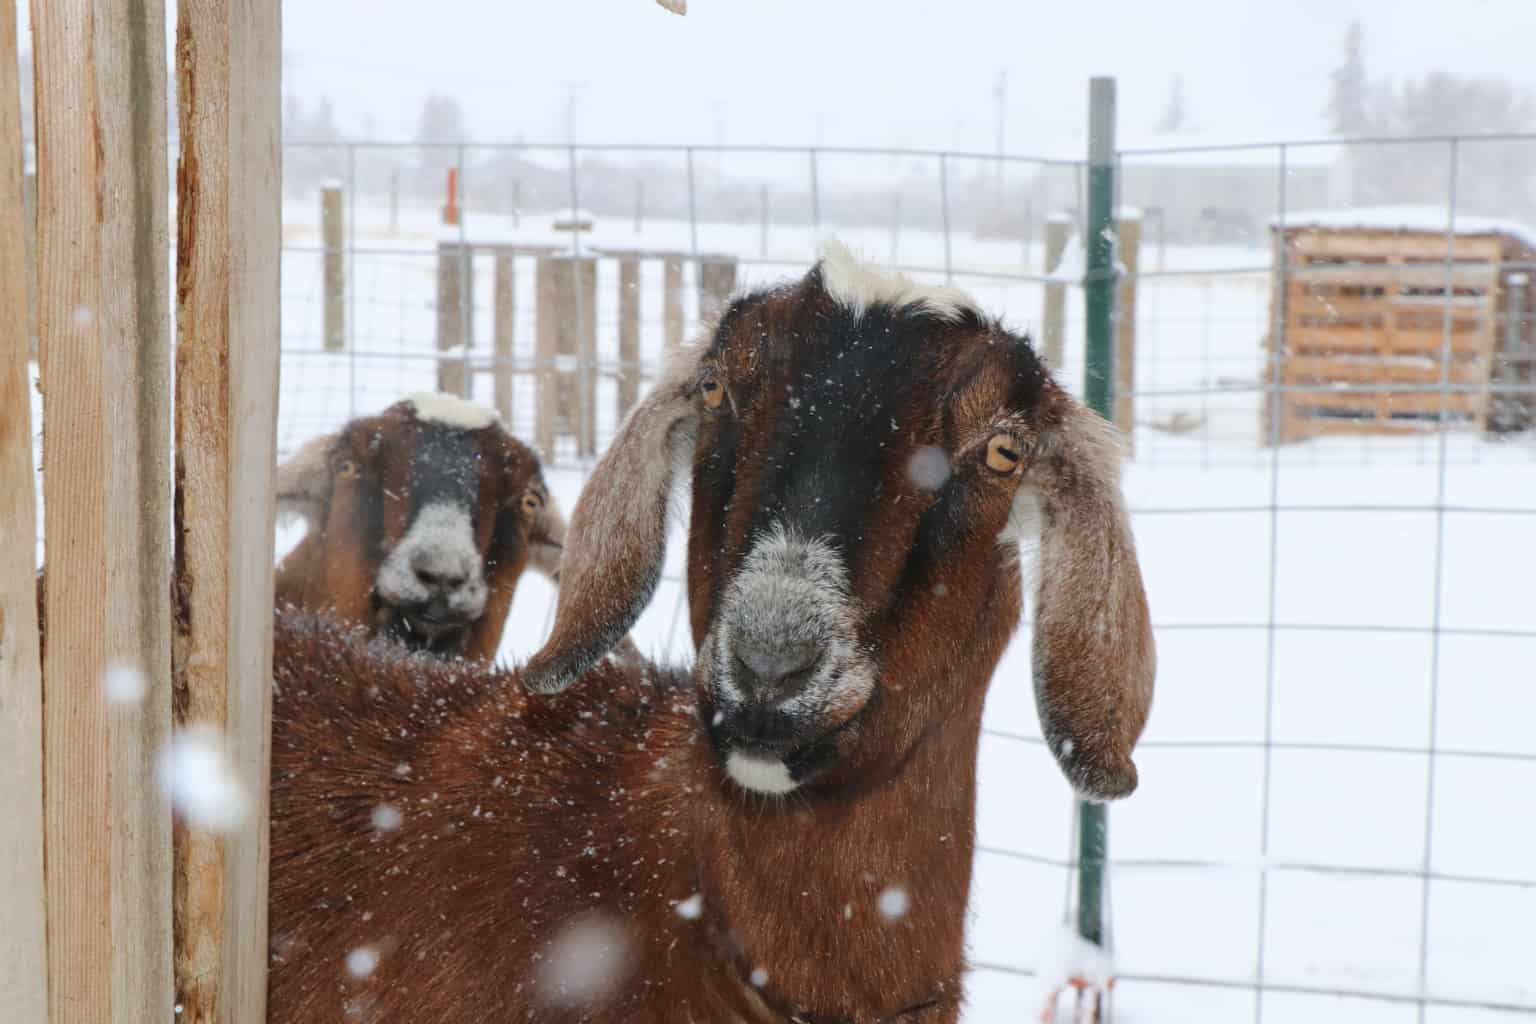 Goats standing in snow and how you can help keep them warm in cold temperatures.